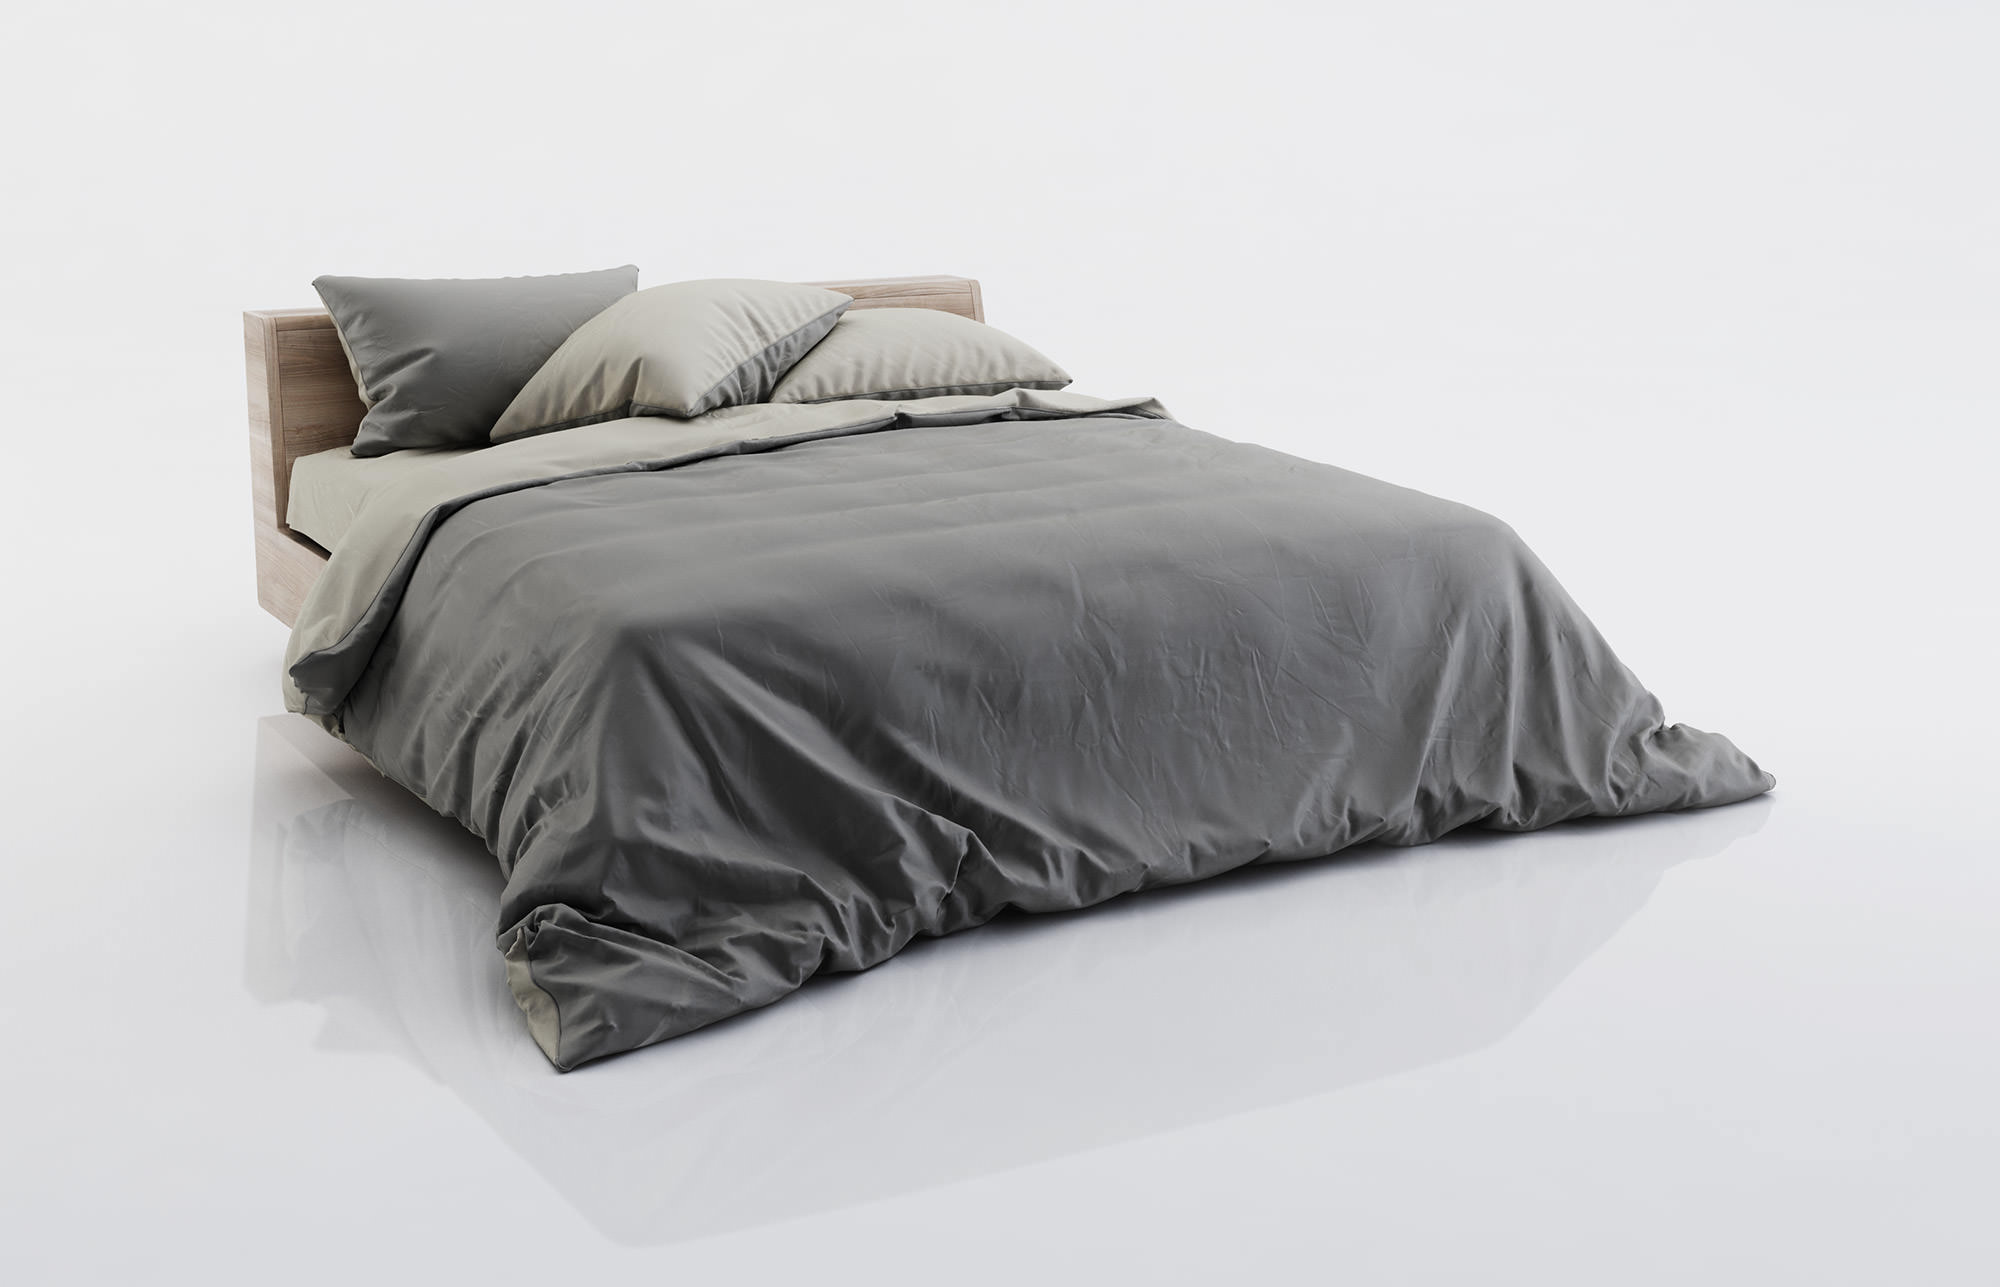 Dark And Grey Bed Linen 3d Model Max Obj Fbx C4d 1